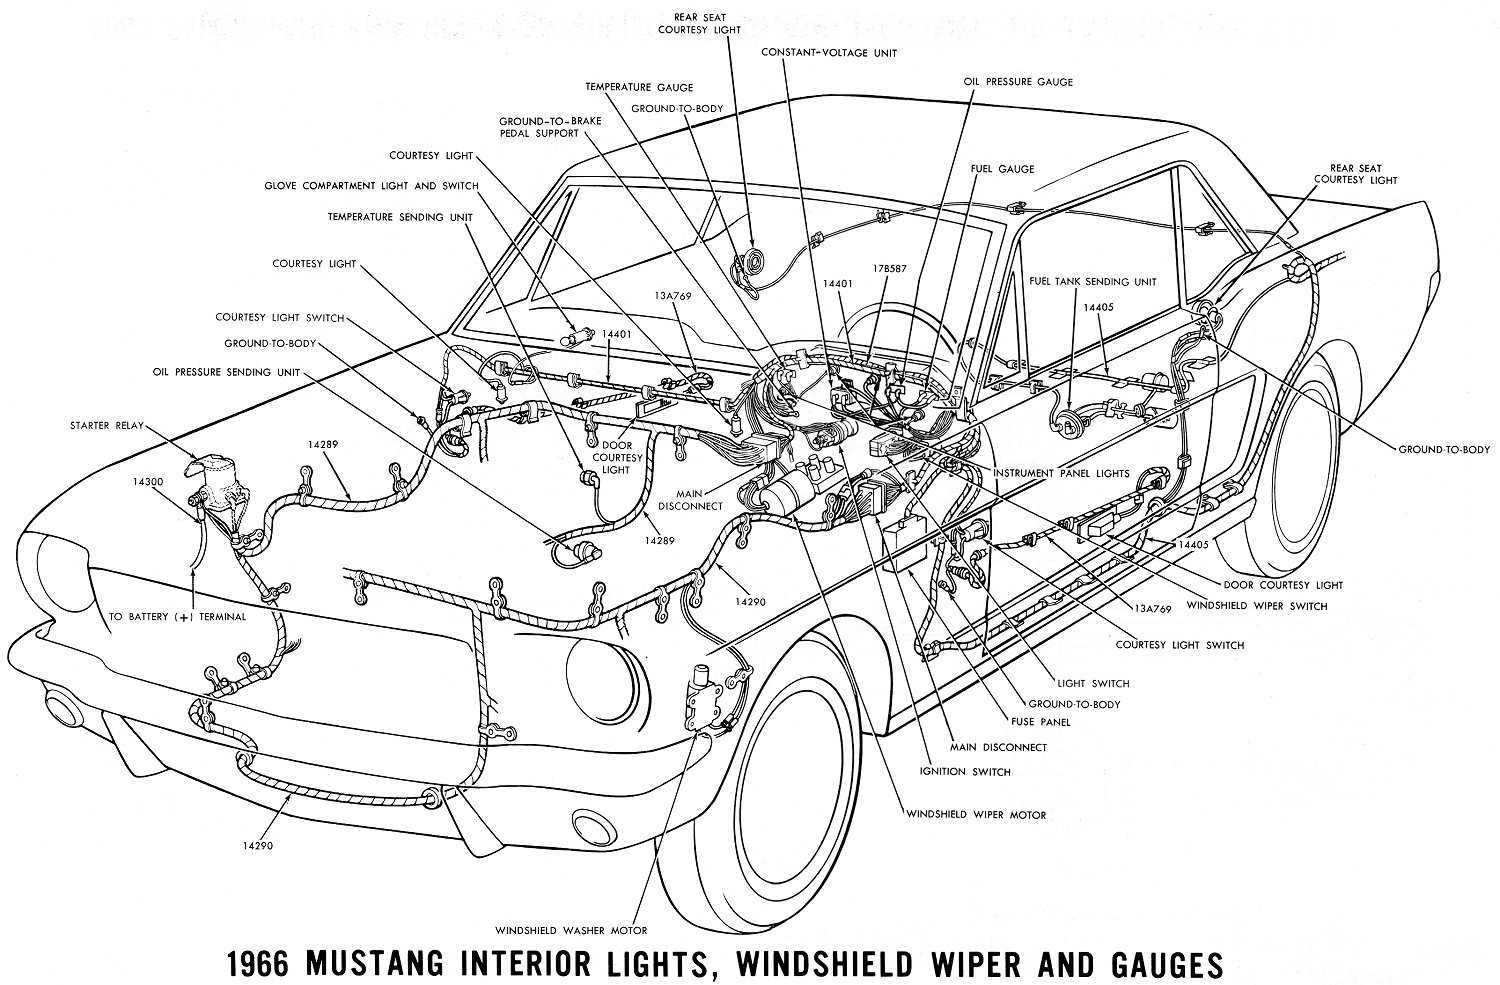 Light Switch To Schematic Wiring 1966 Mustang Diagrams Average Joe Restoration Interior Lights Windshield Wiper And Gauges